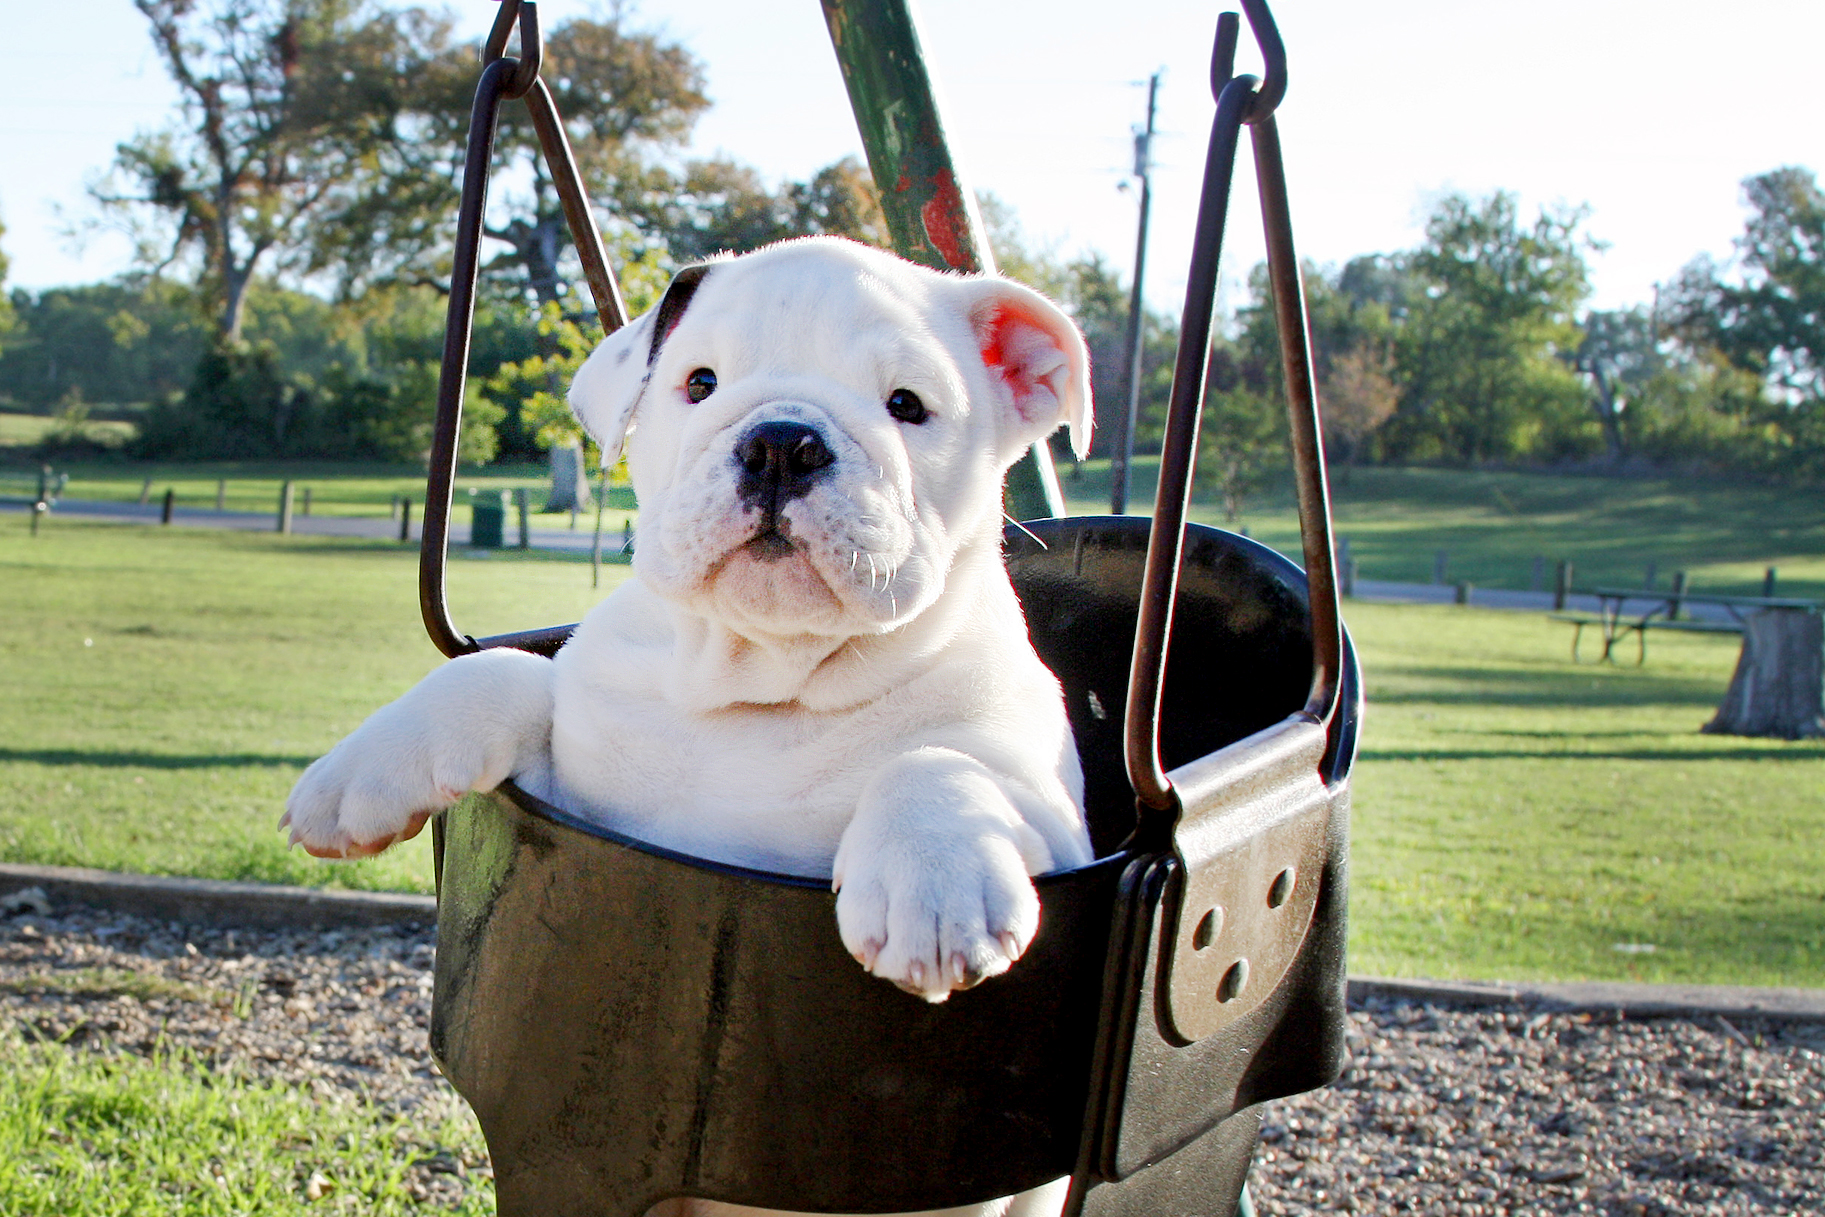 Summer Is in Full Swing — Especially for These Cute Swinging Pups